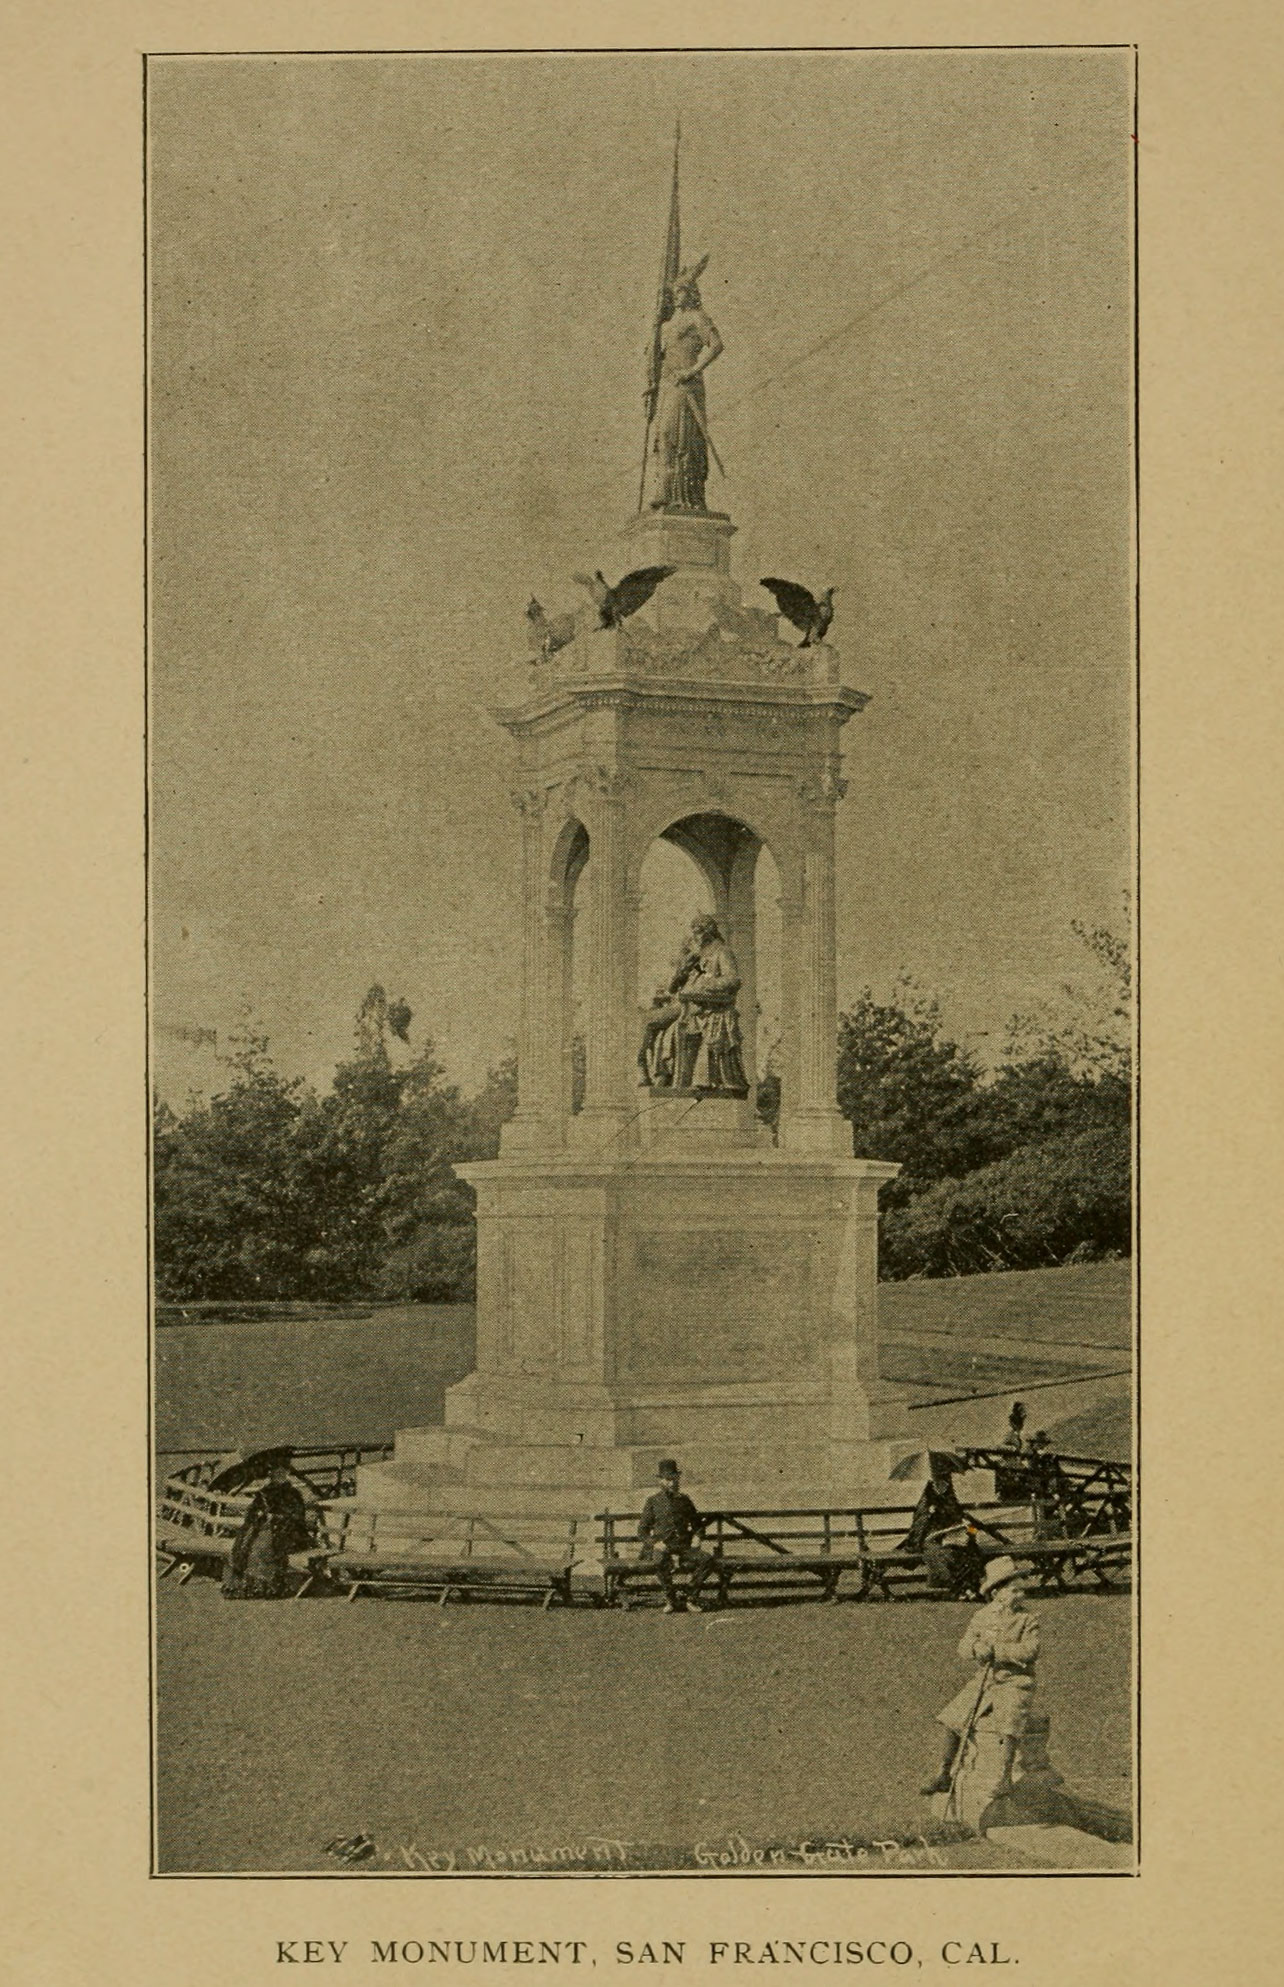 Francis Scott Key Monument, San Francisco, California.